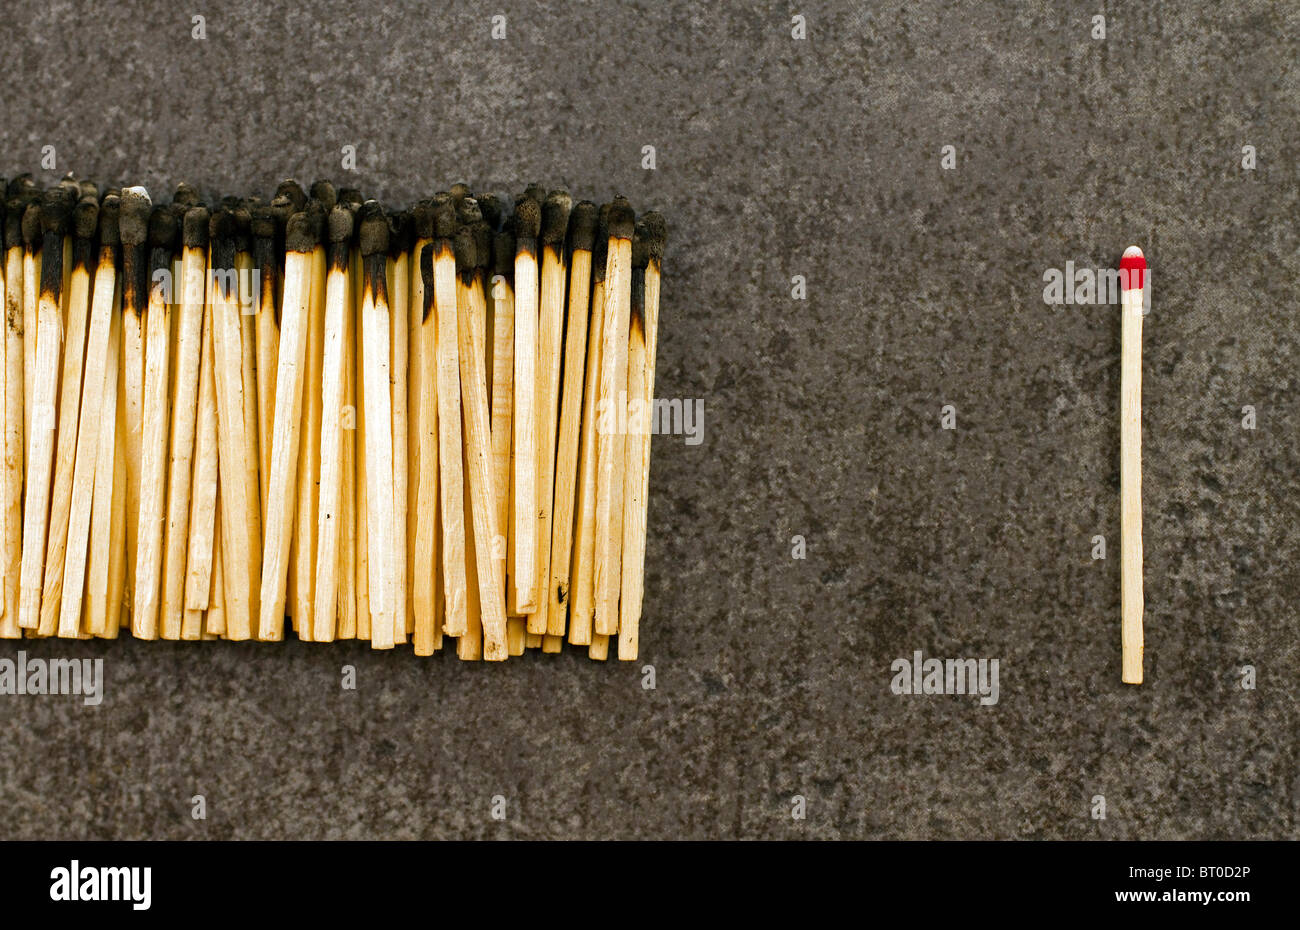 A single unused match next to a bunch of burnt ones. - Stock Image